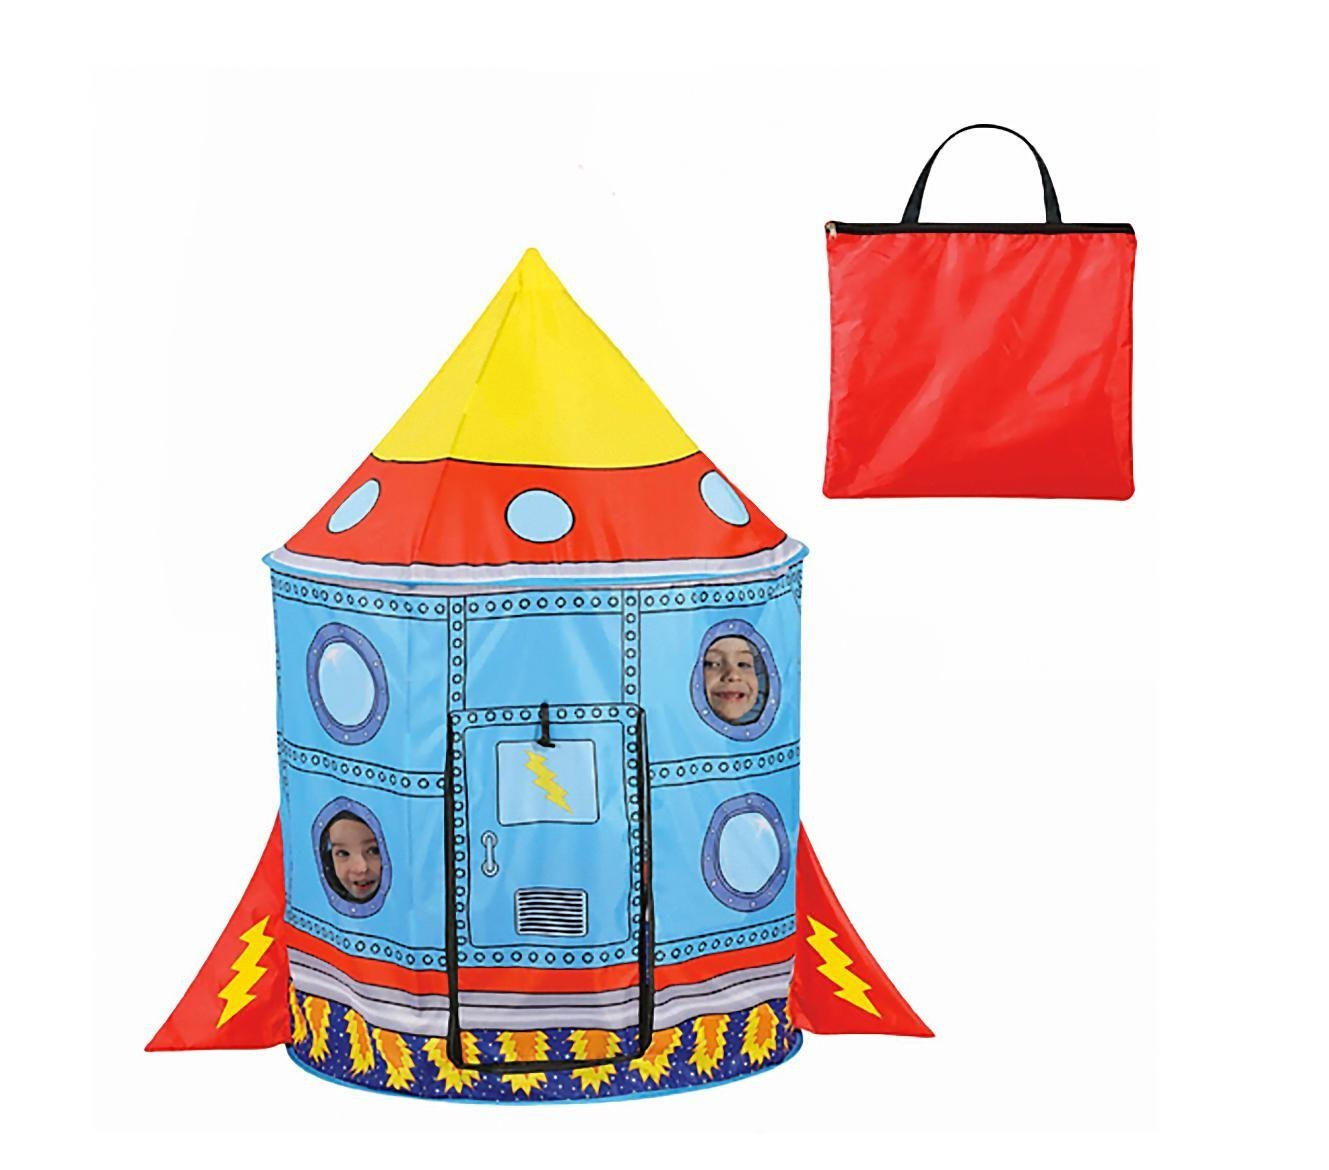 sc 1 st  Amazon.com & Amazon.com: Liteaid Rocket Ship Tent: Toys u0026 Games